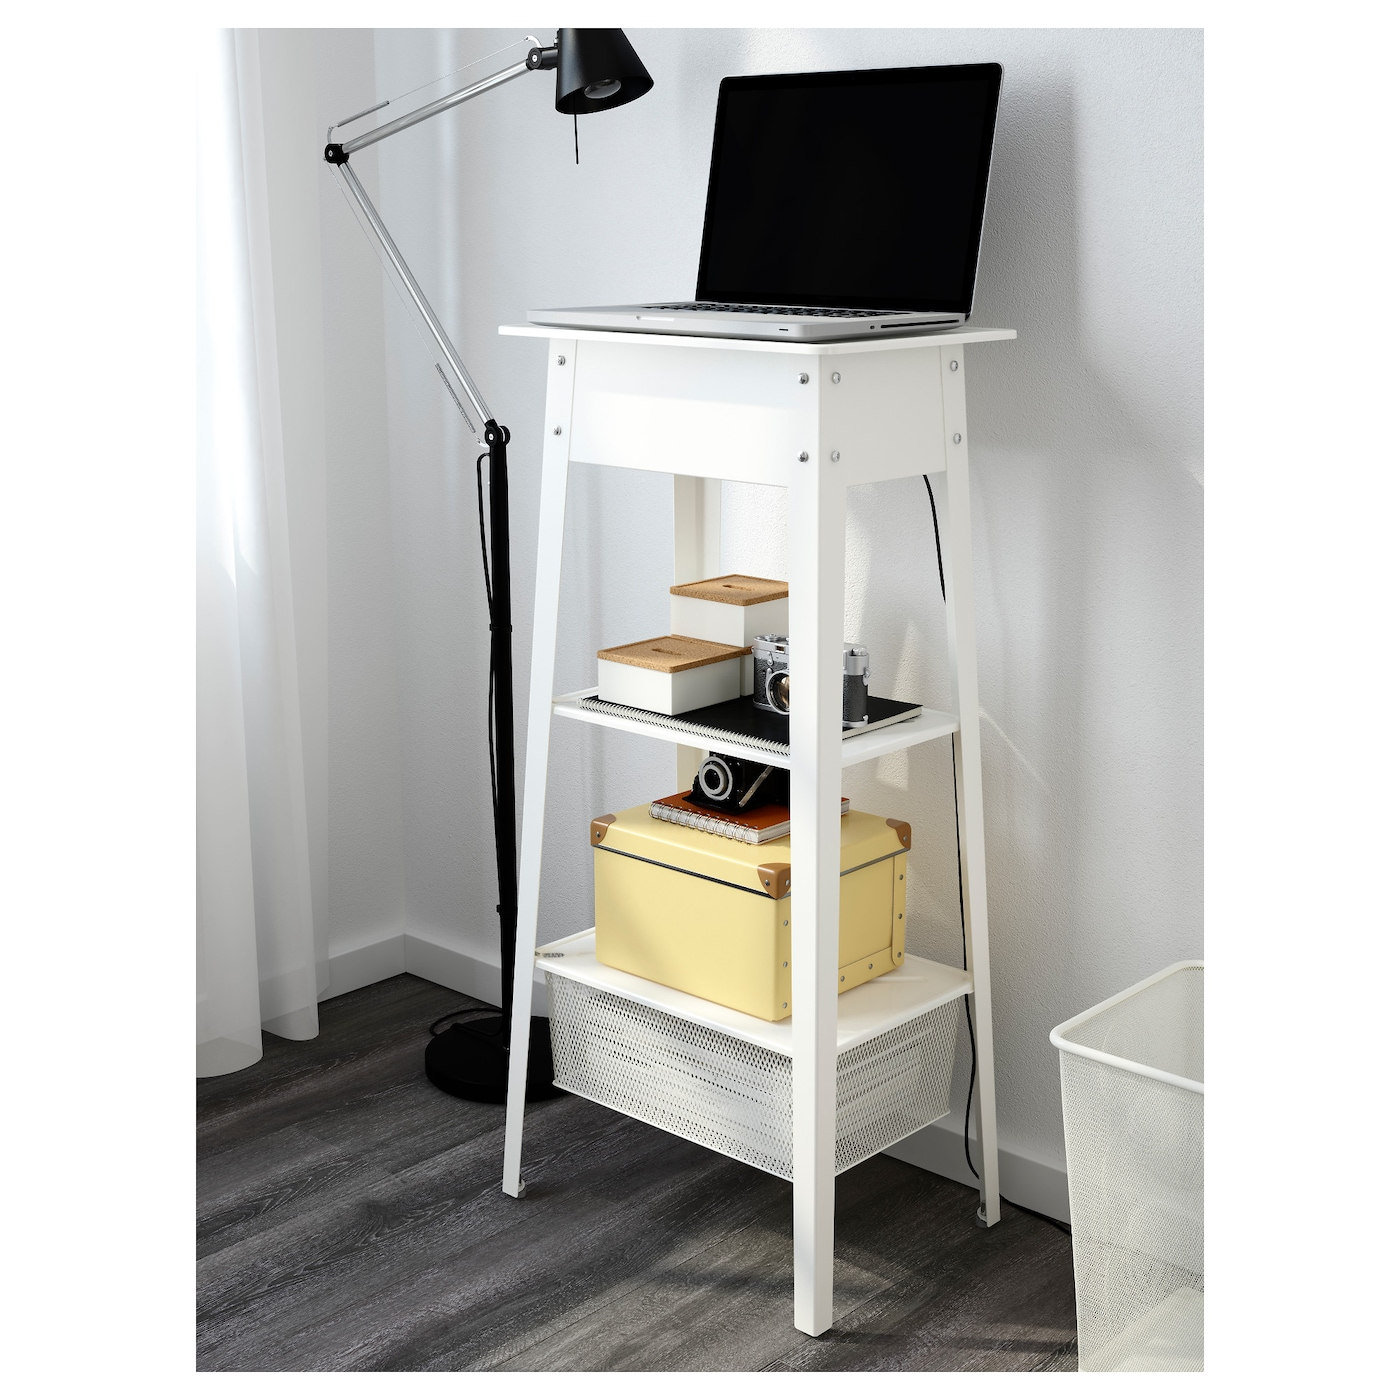 ikea ps 2014 standing laptop station white ikea. Black Bedroom Furniture Sets. Home Design Ideas